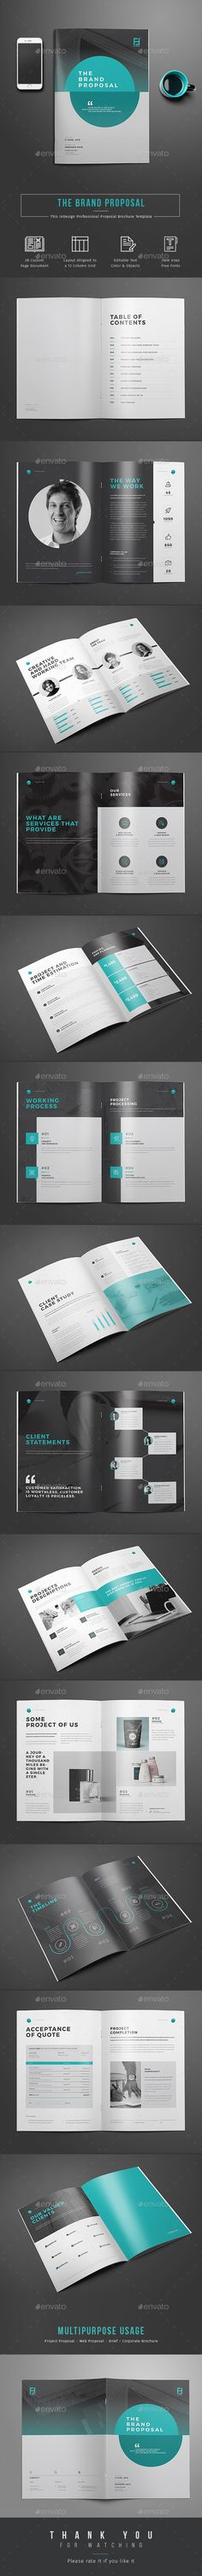 Proposal Template Design | Download https://graphicriver.net/item/proposal/16449617?ref=themedevisers